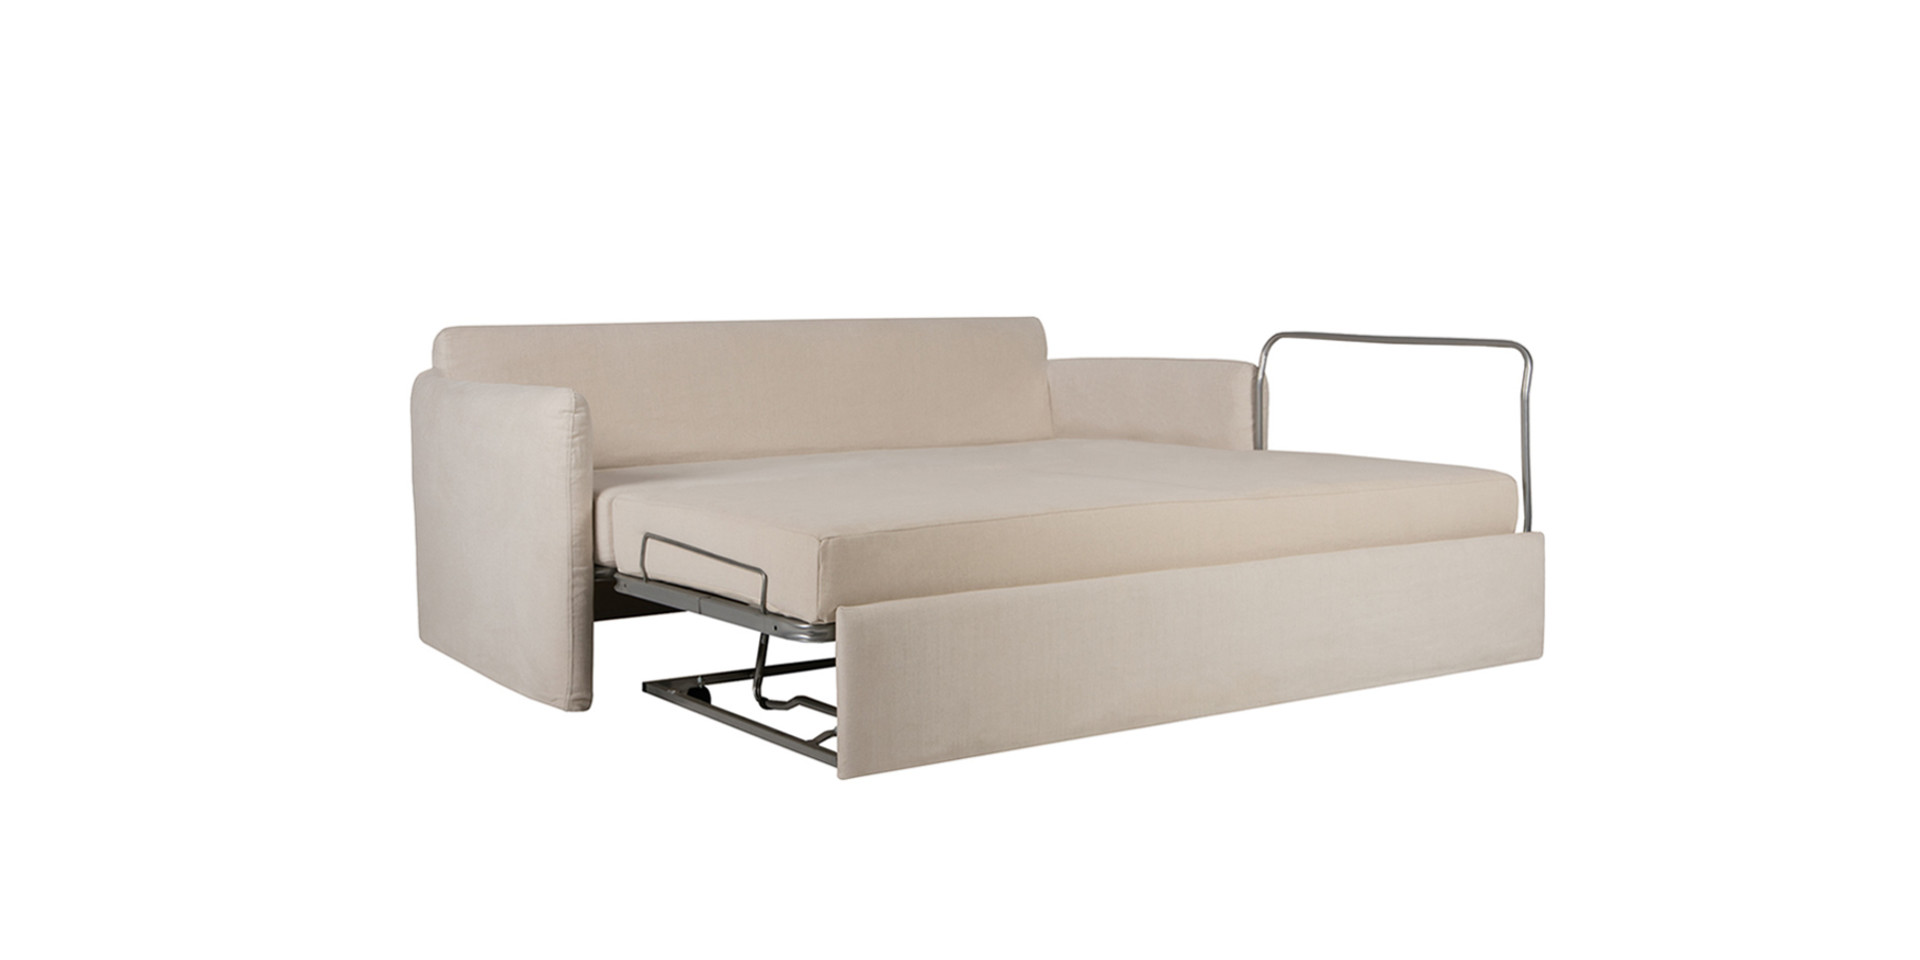 LOTTA_sofa_bed_caleido3790_beige_11